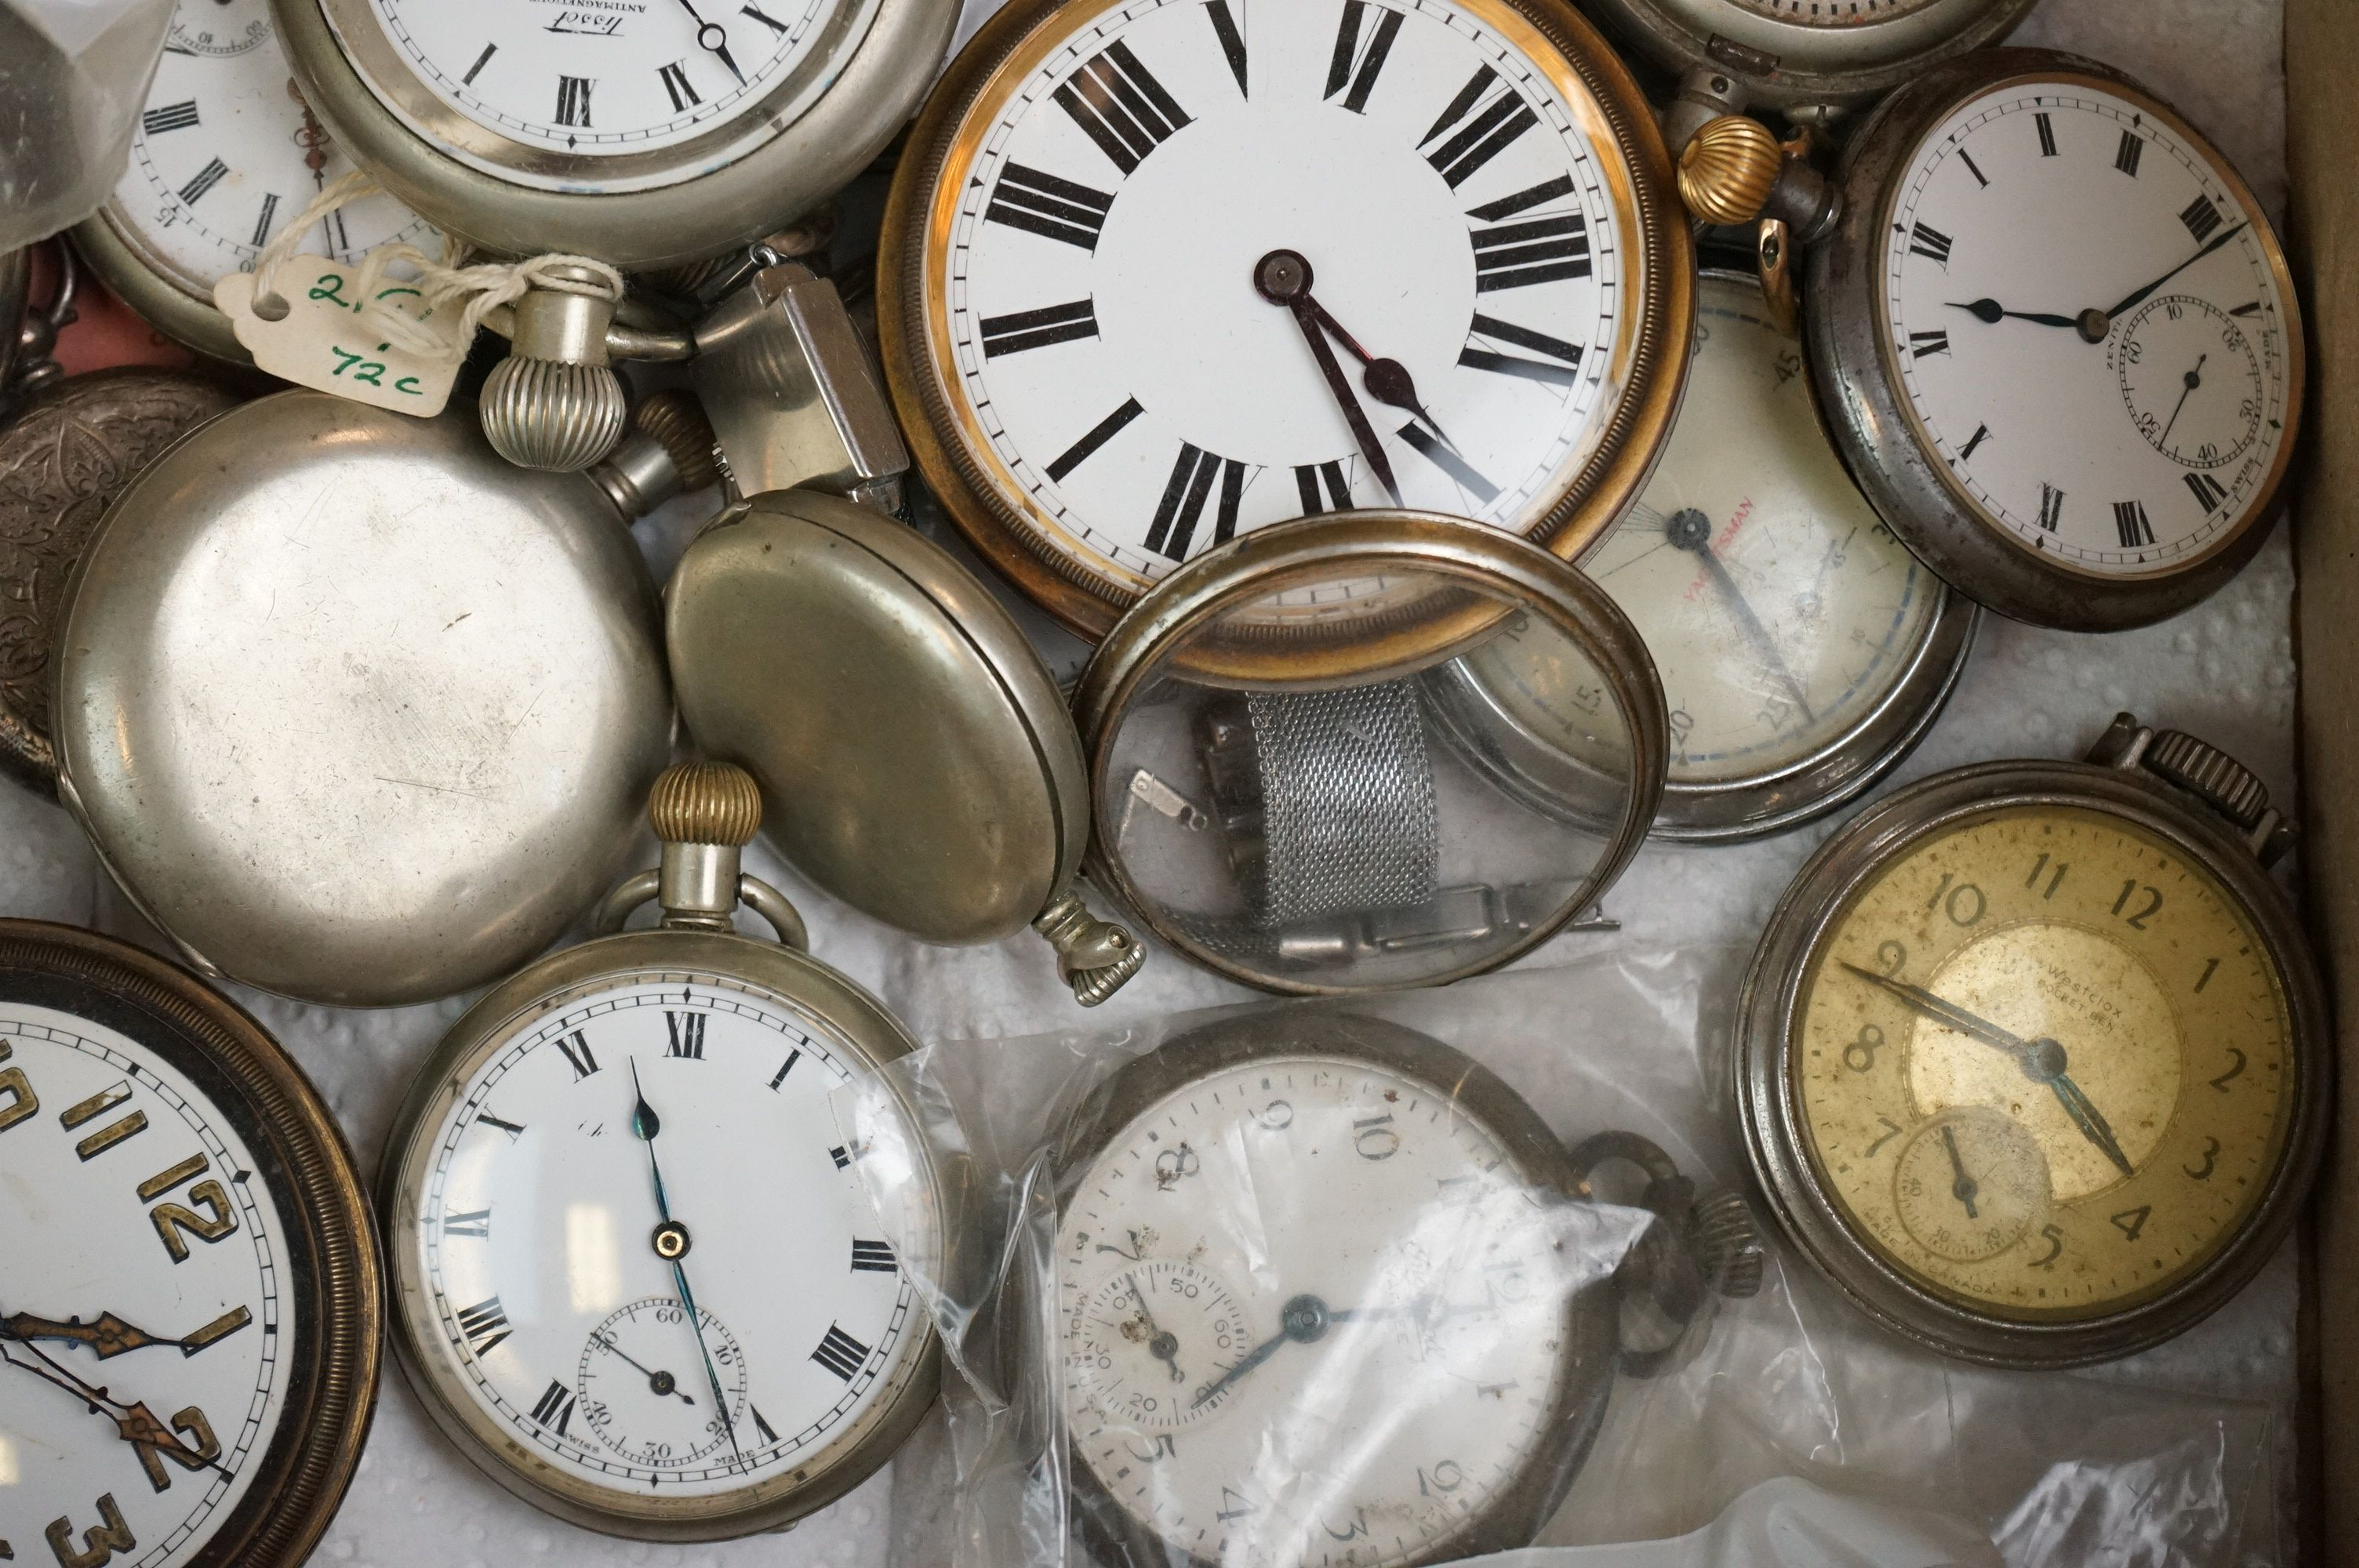 Large collection of white metal, chrome plated and stainless steel pocket watches to include Tissot, - Image 4 of 5